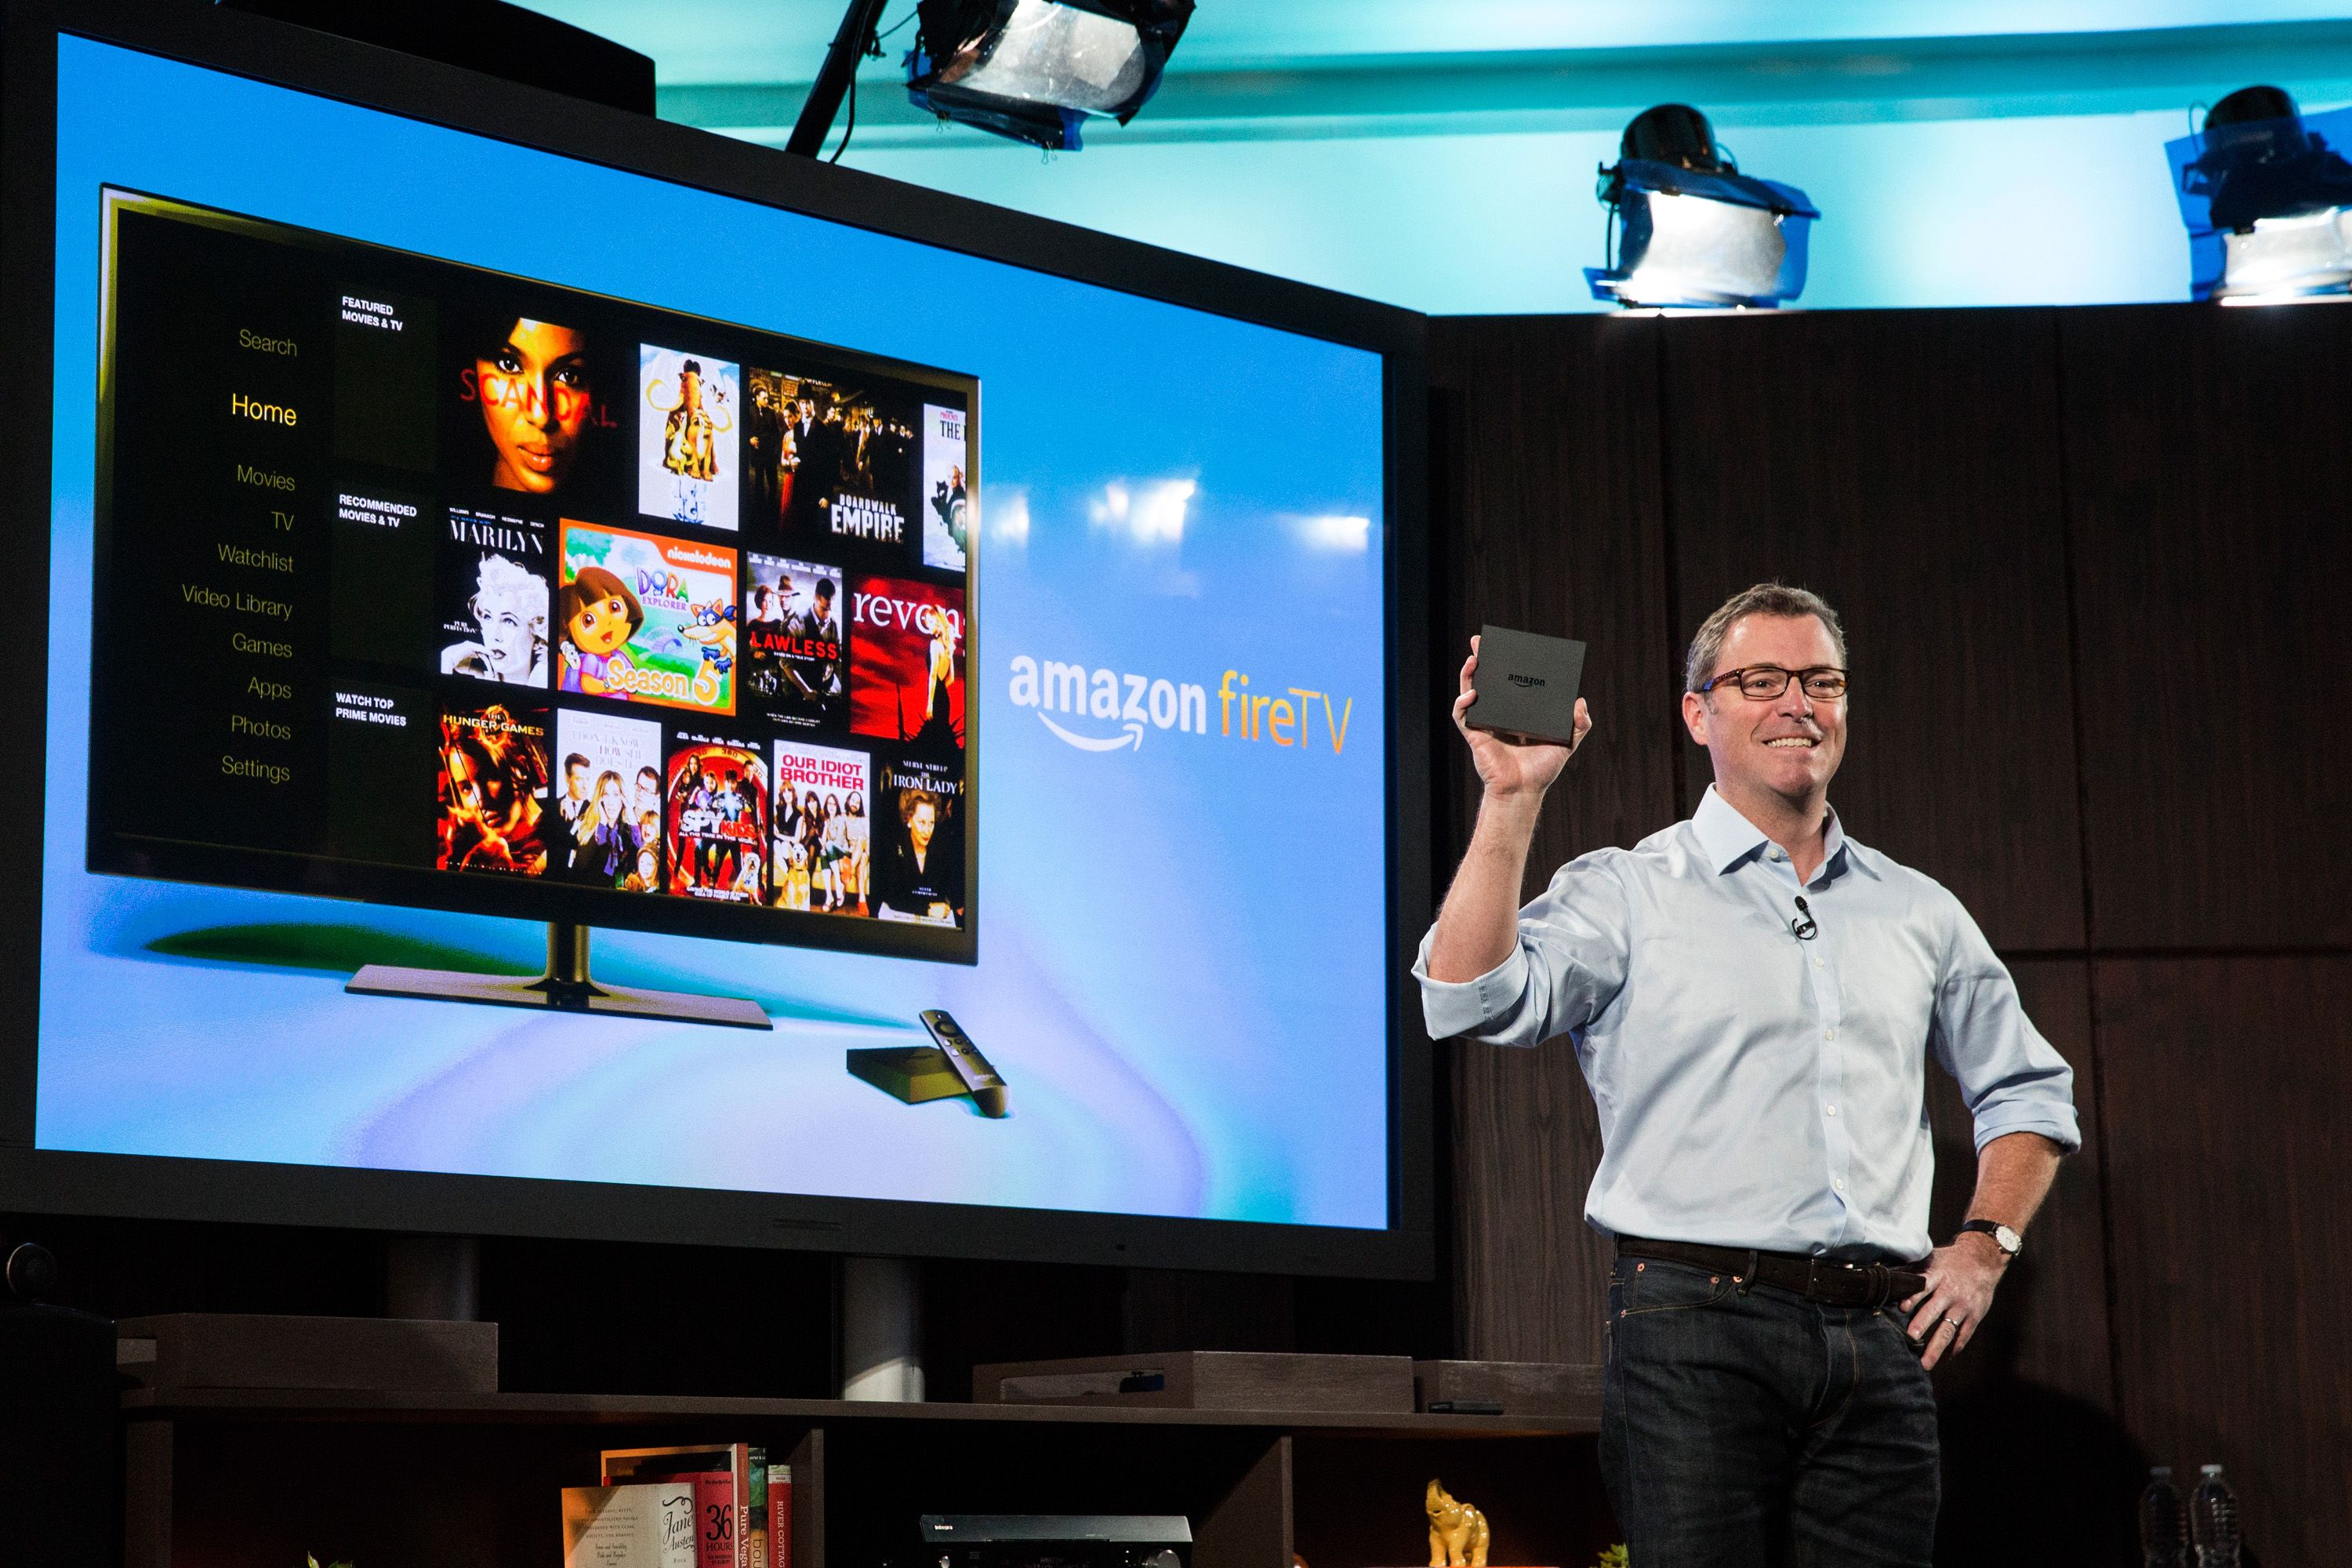 The 10 Best Amazon Fire TV Games